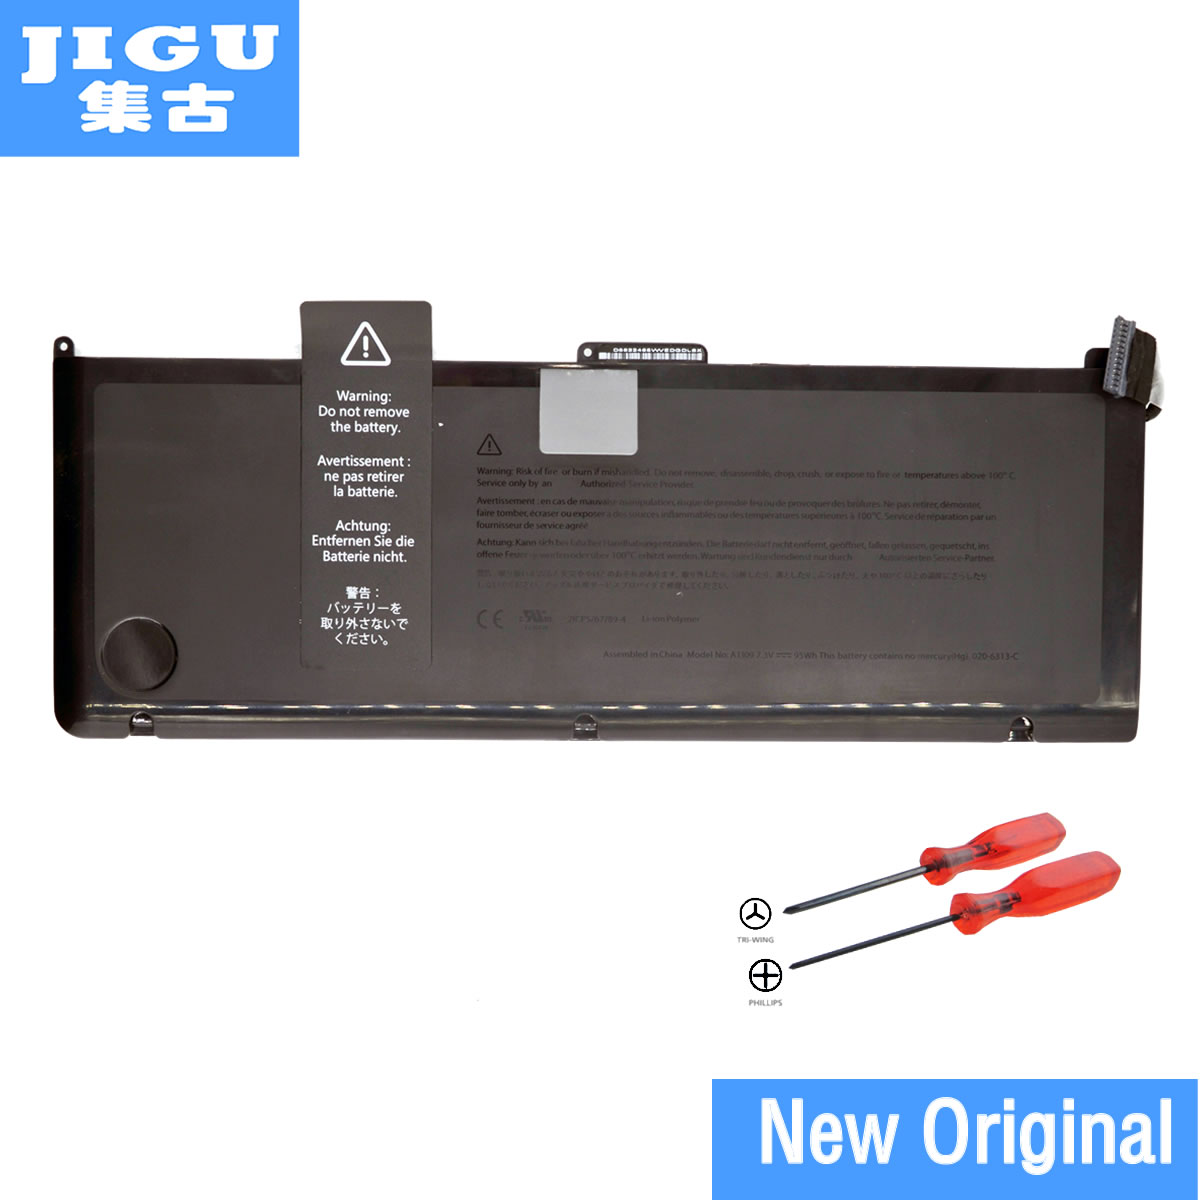 JIGU Free shipping A1309 Original Laptop Battery For APPLE MacBook Pro 17 A1297  [2009 Production] MC226*/A MC226CH/A 95WH new original 13 inch a1708 laptop a1713 battery 11 4v 54 5 wh for apple macbook pro retina 13 a1708 battery a1713 free shipping